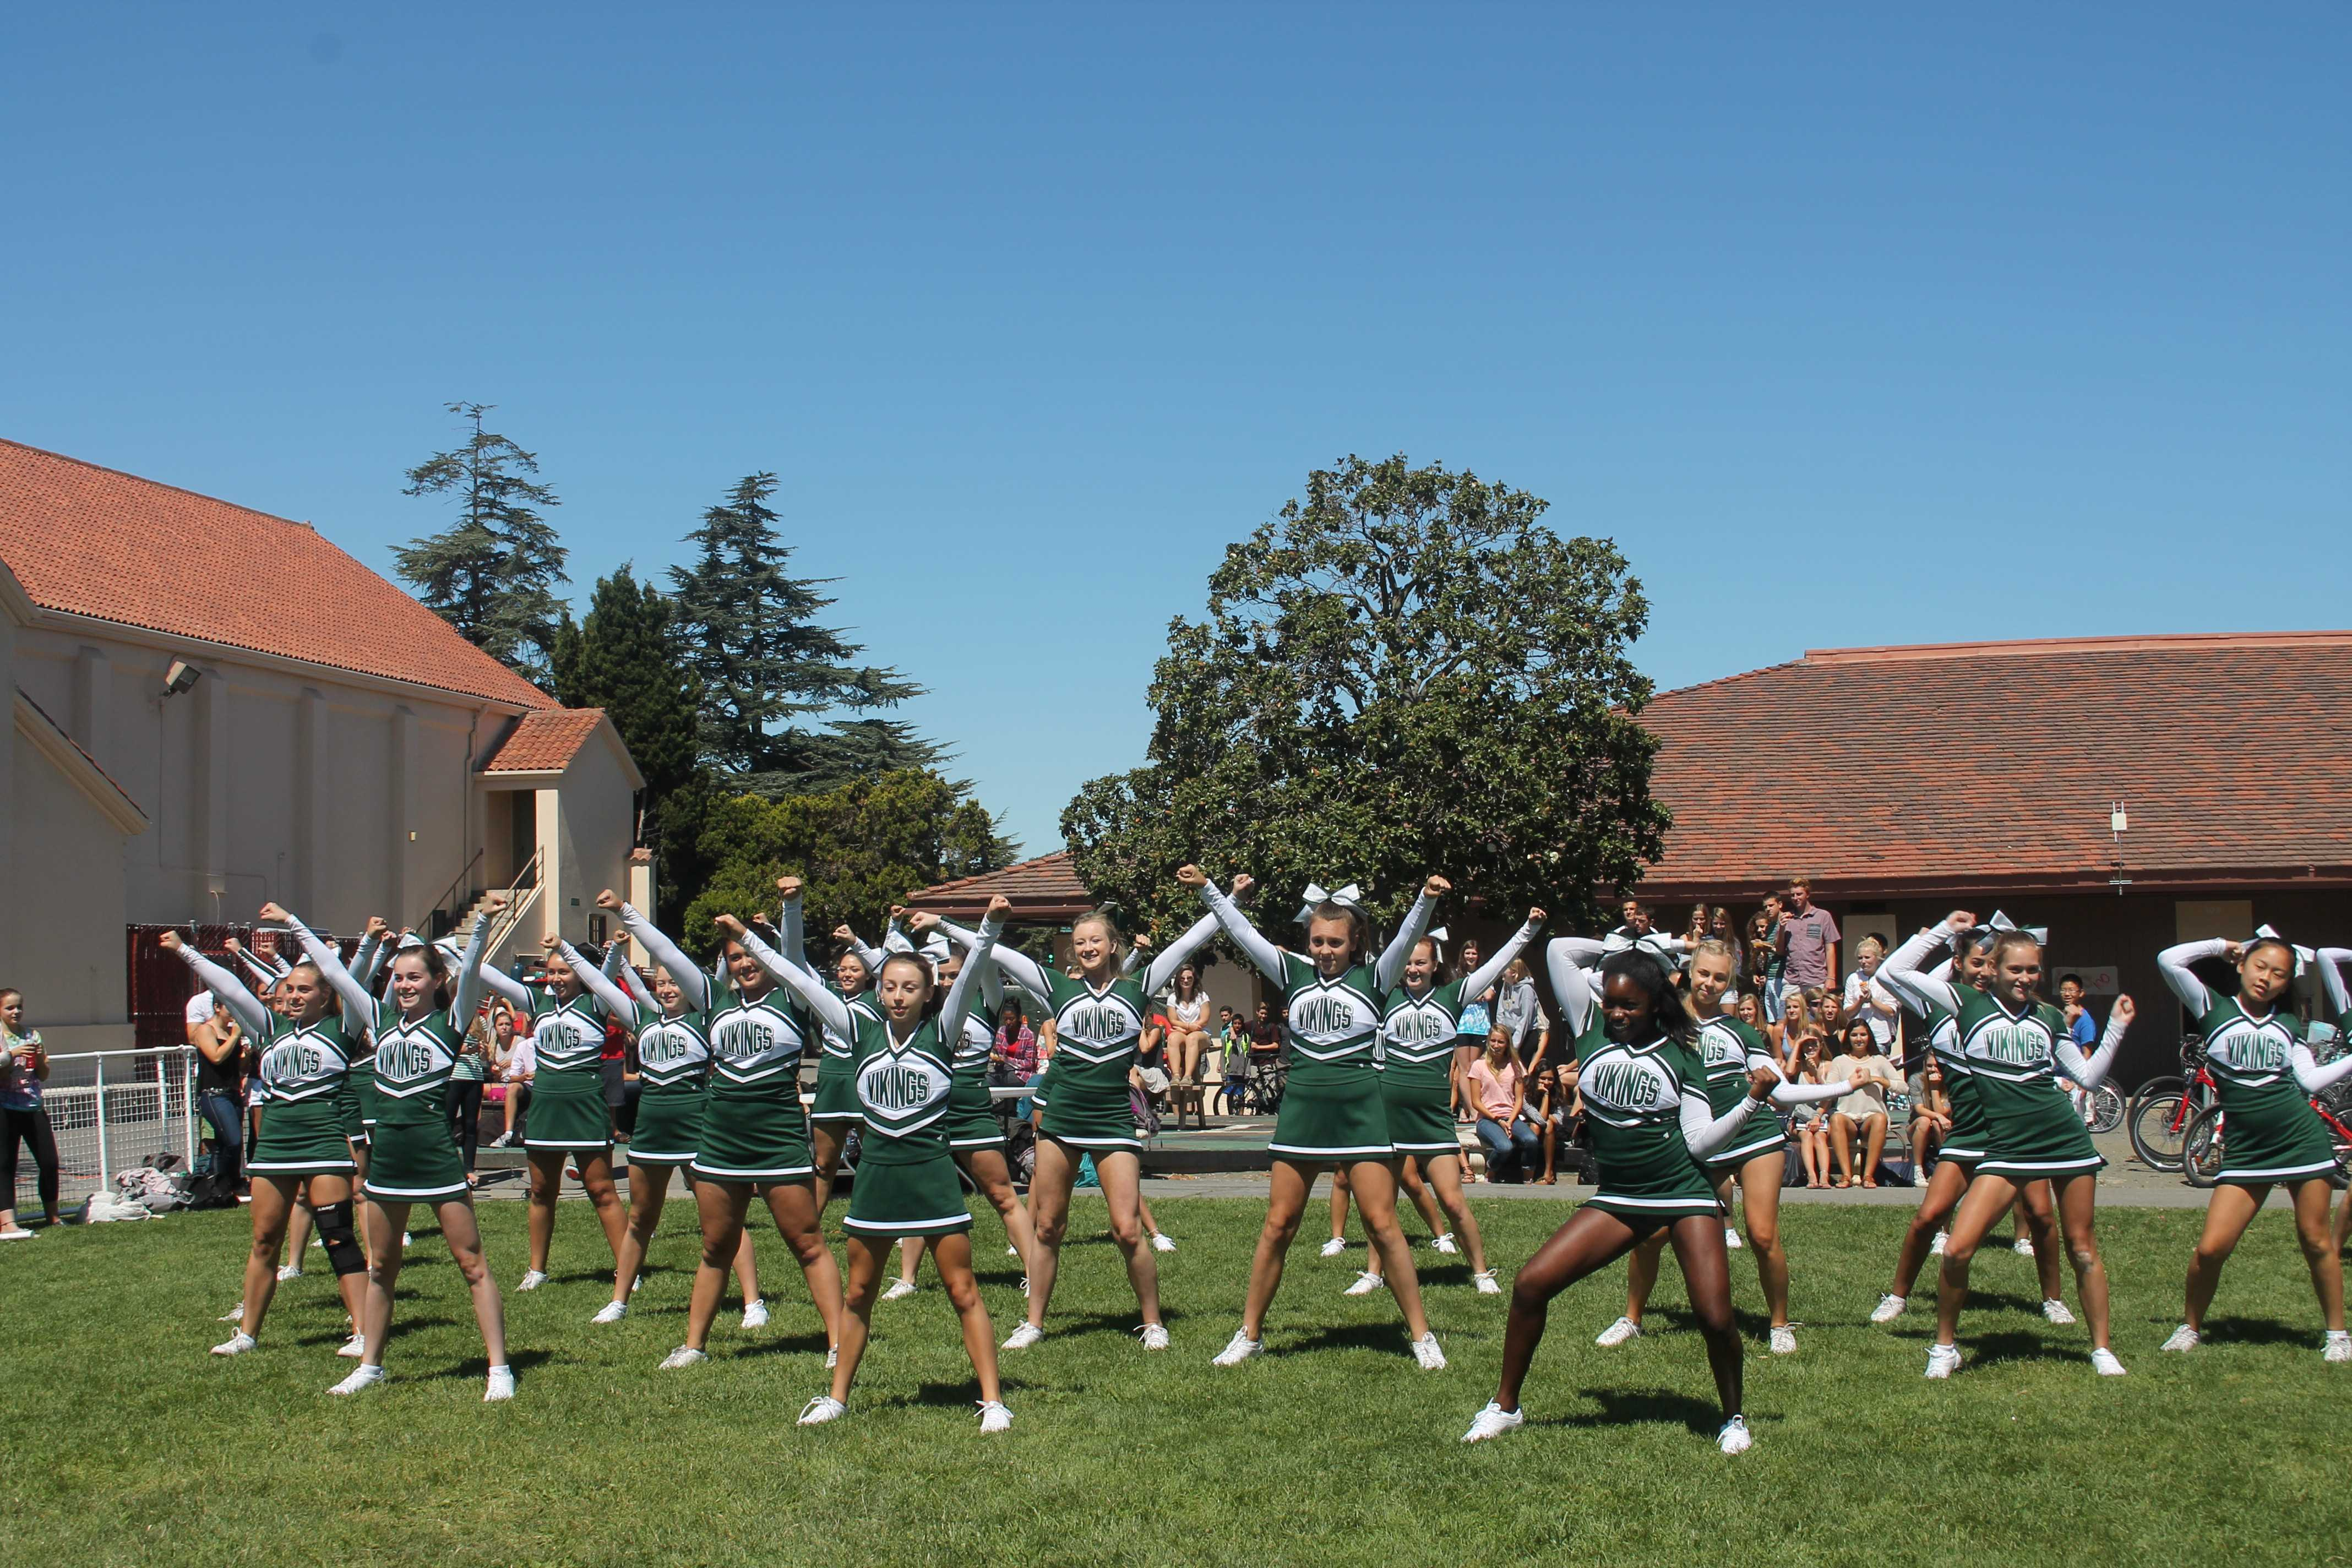 The Paly Cheer Team strikes a pose on the Quad during the first rally of the year. Photo by Chloe Fishman.